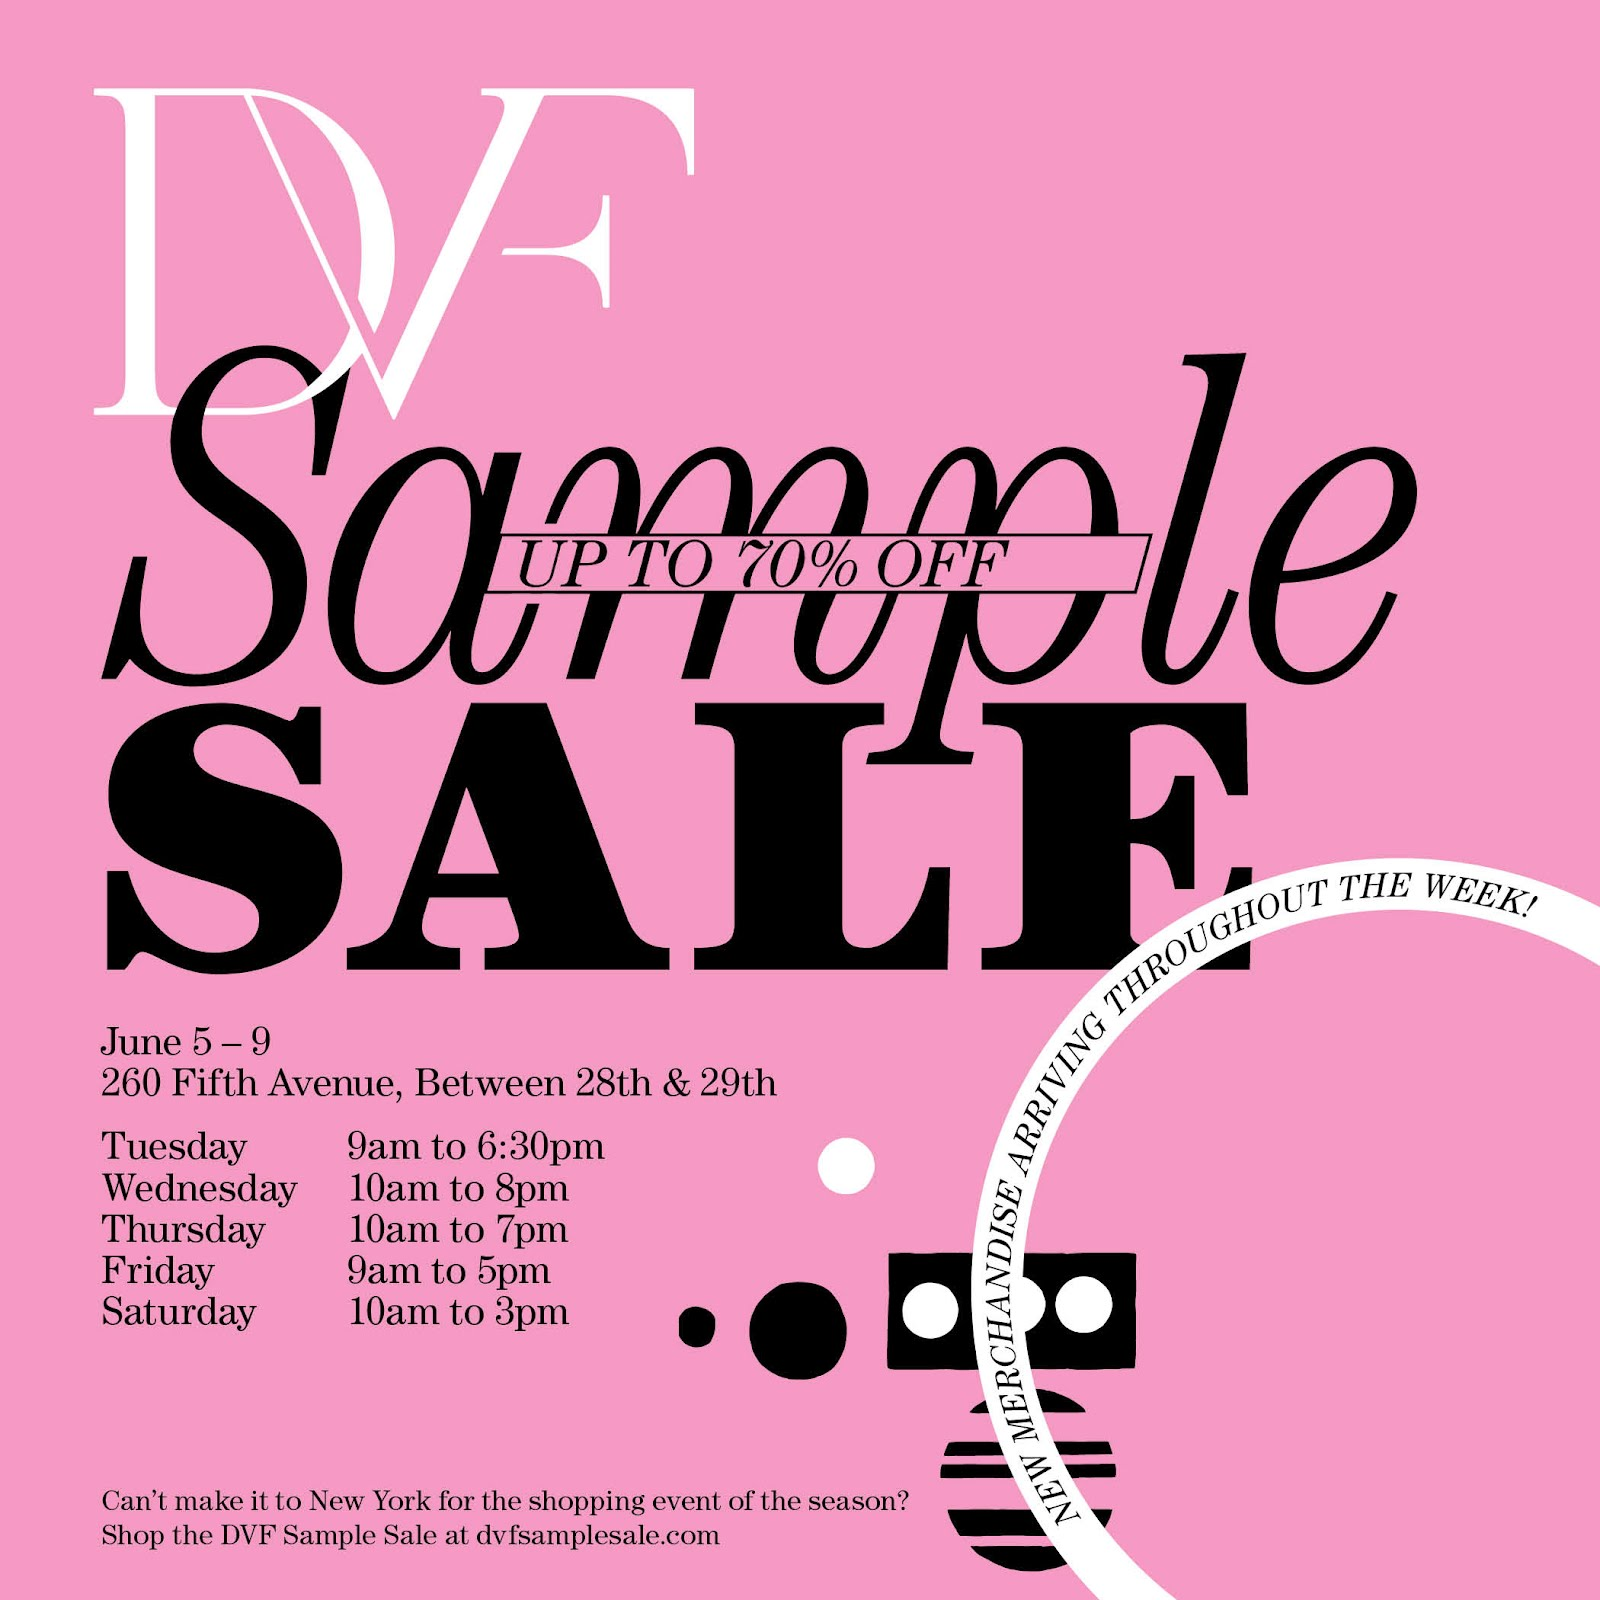 274b6c9c3e38 For the first time, shoppers can access DVF's sample sale when they log  onto http://dvfsamplesale.com.